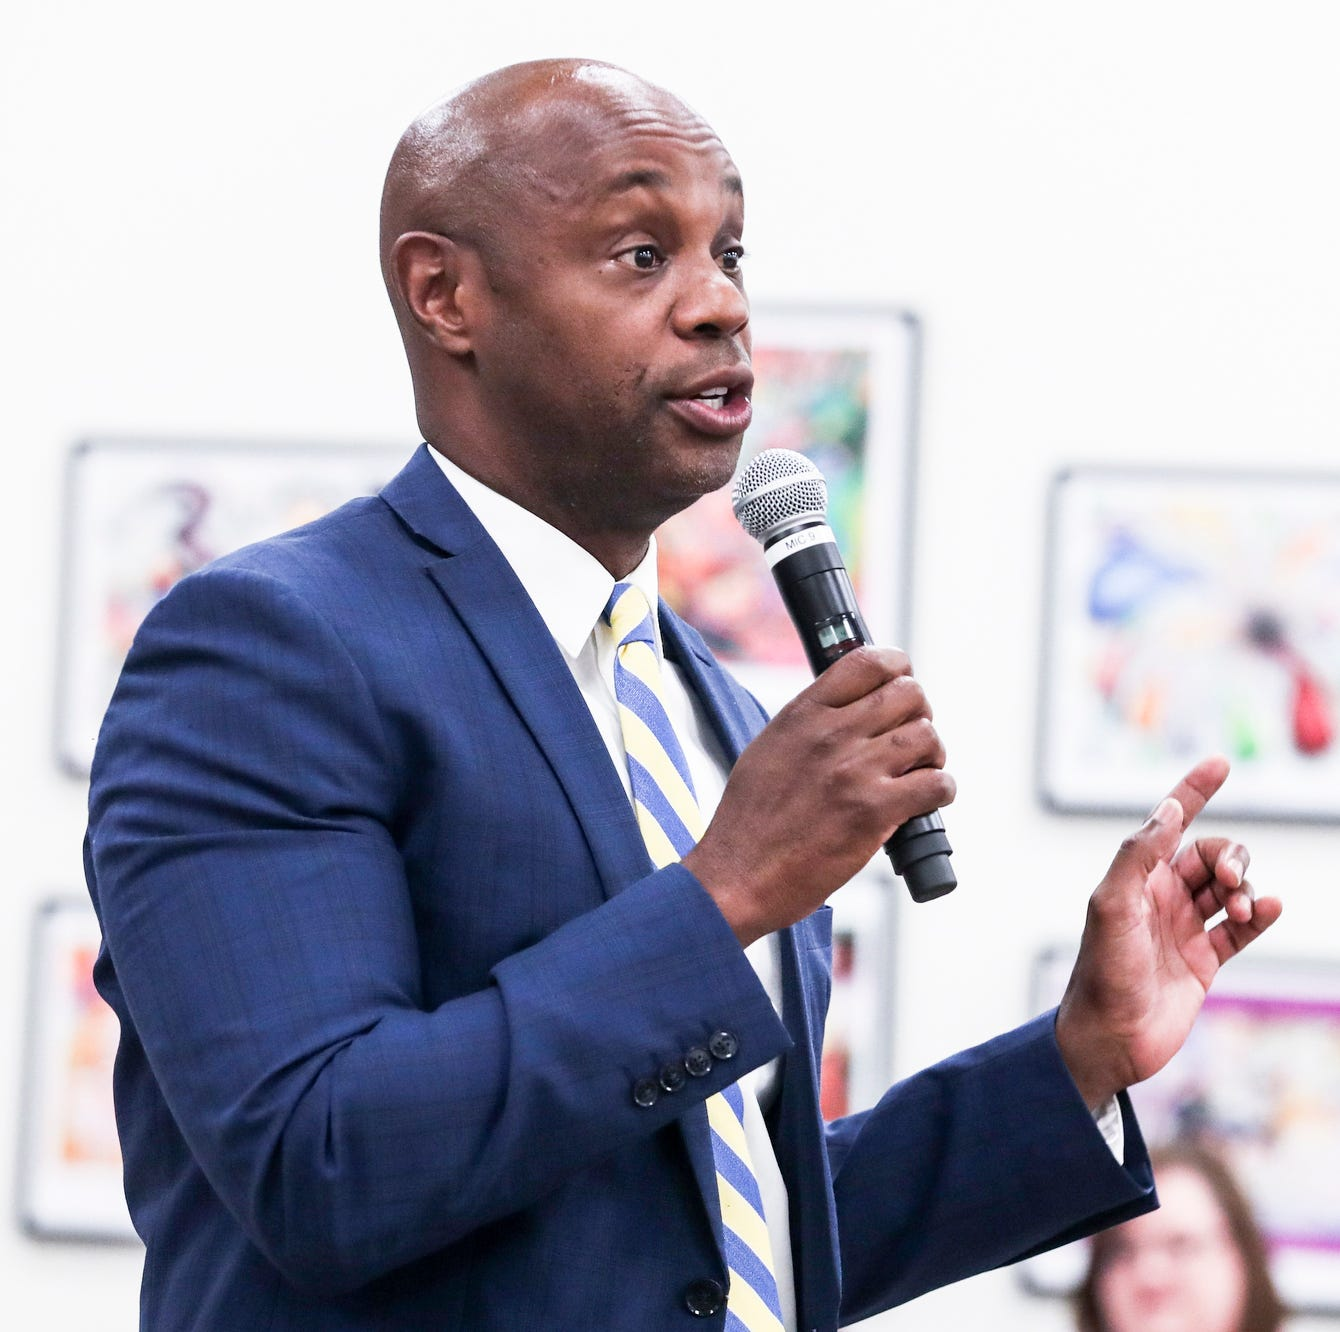 Shelby County Schools Superintendent Dorsey Hopson resigning Tuesday, sources say